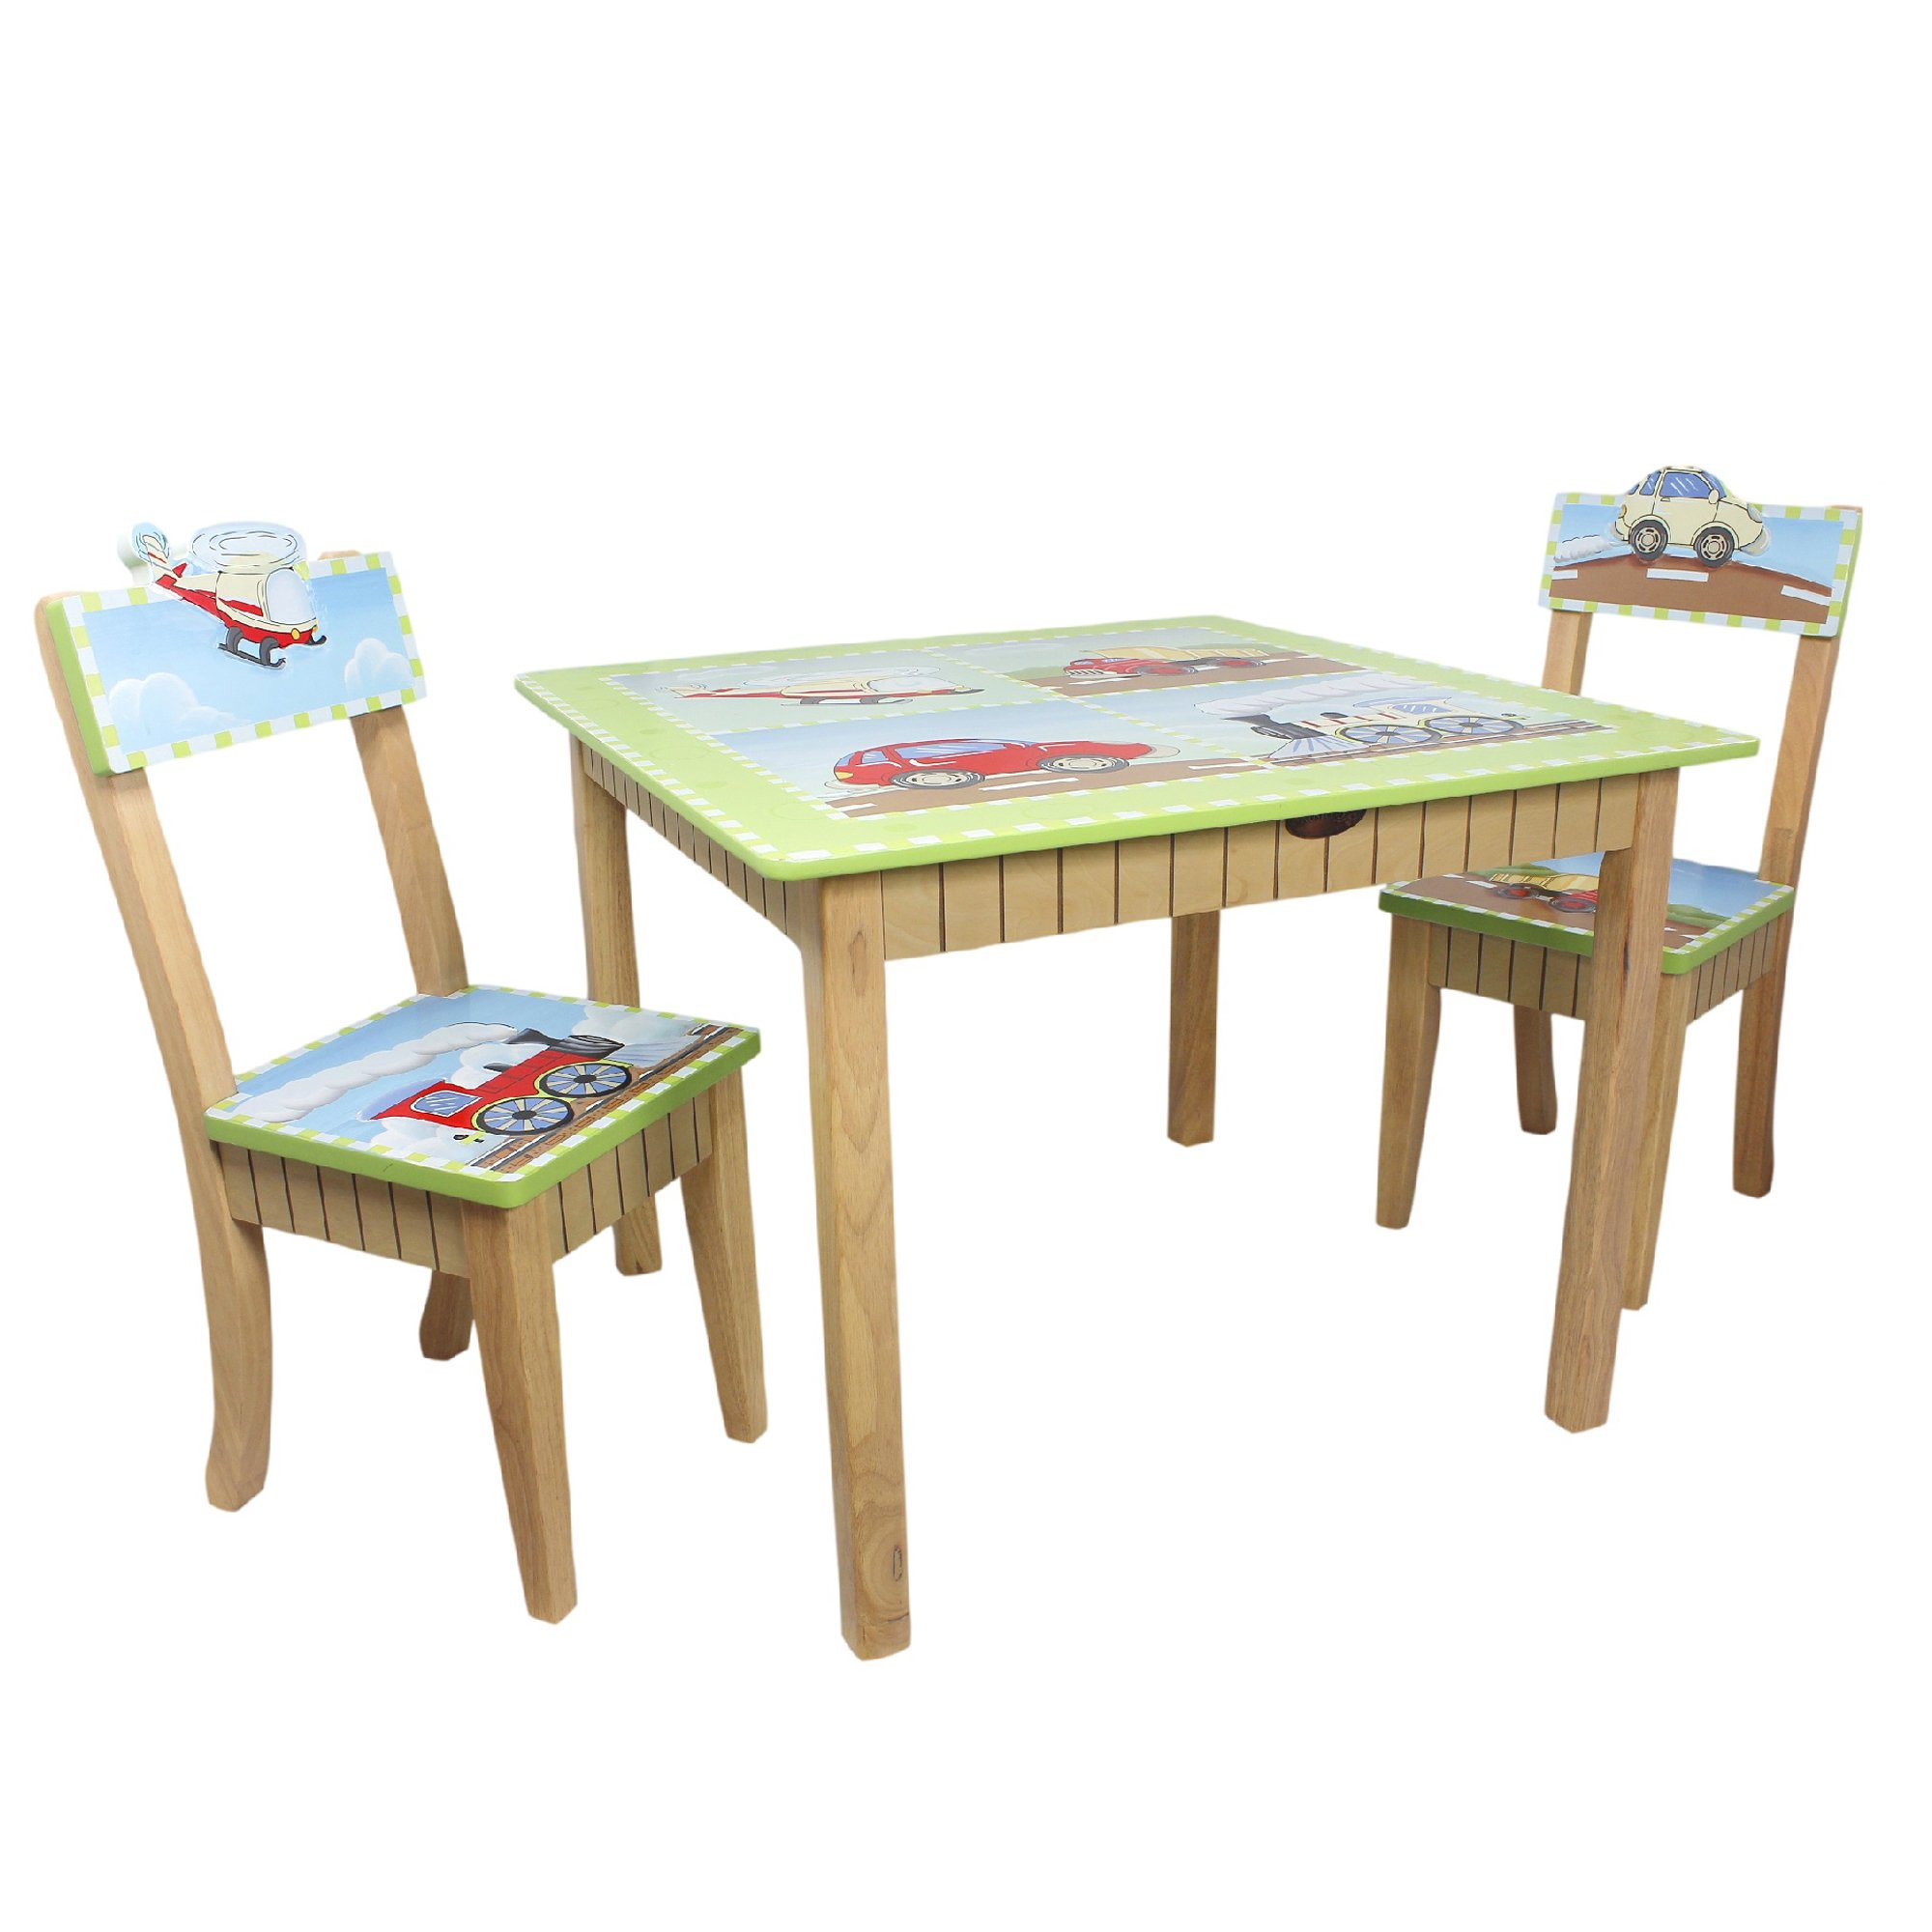 Fantasy Fields - Transportation Thematic Hand Crafted Kids Wooden Table and 2 Chairs Set |Imagination Inspiring Hand Crafted & Hand Painted Details   Non-Toxic, Lead Free Water-based Paint